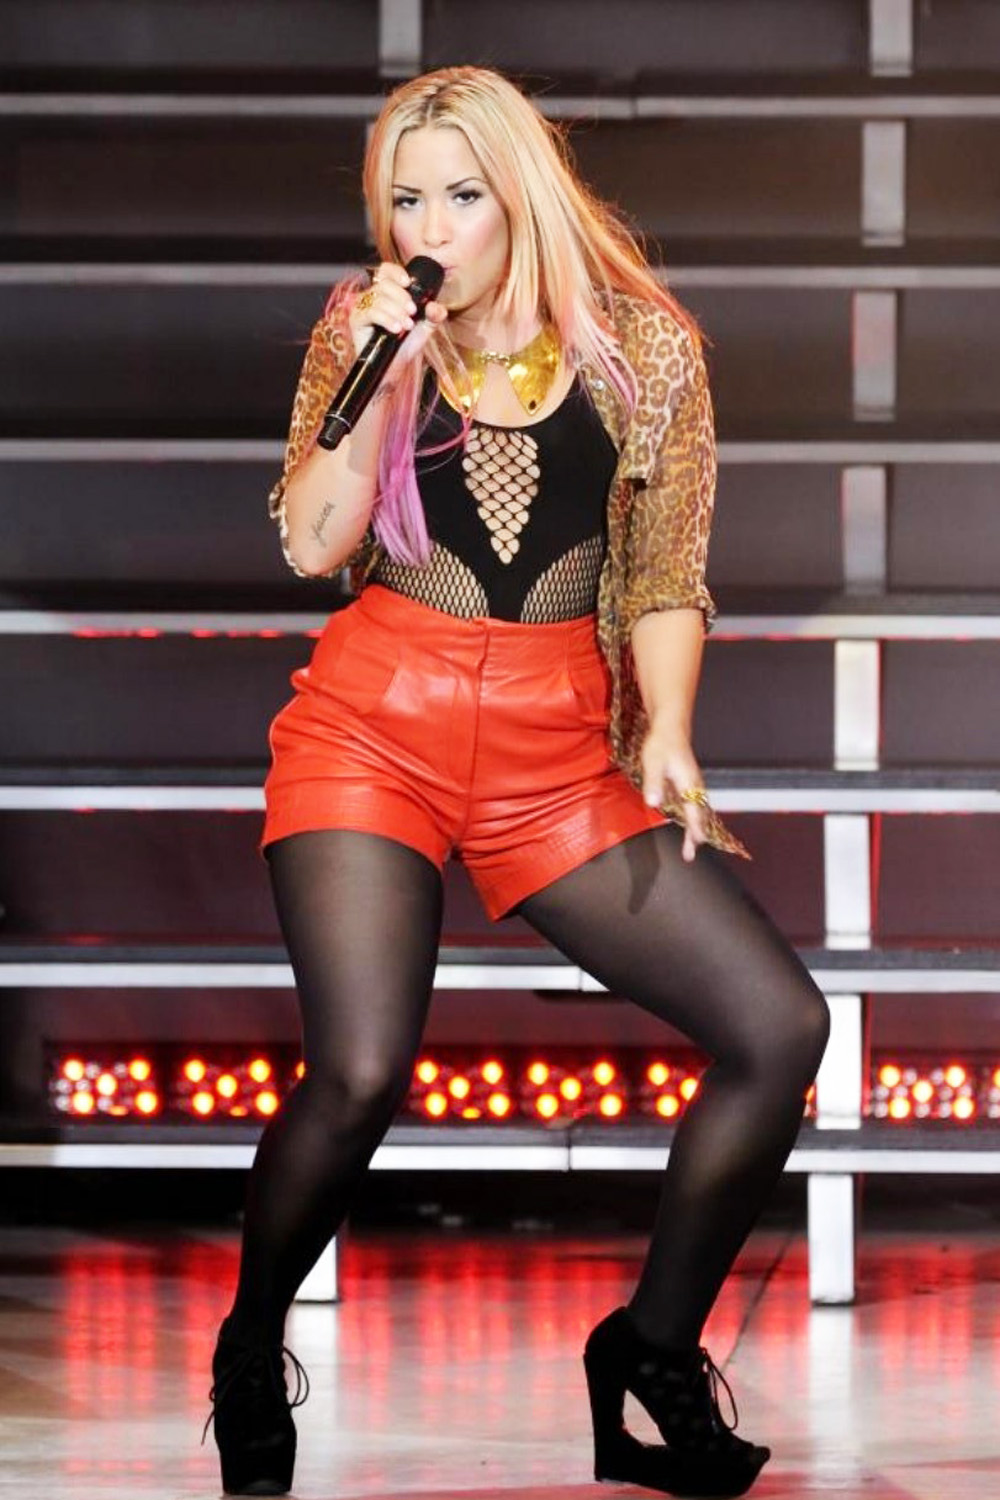 Demi Lovato performance candids